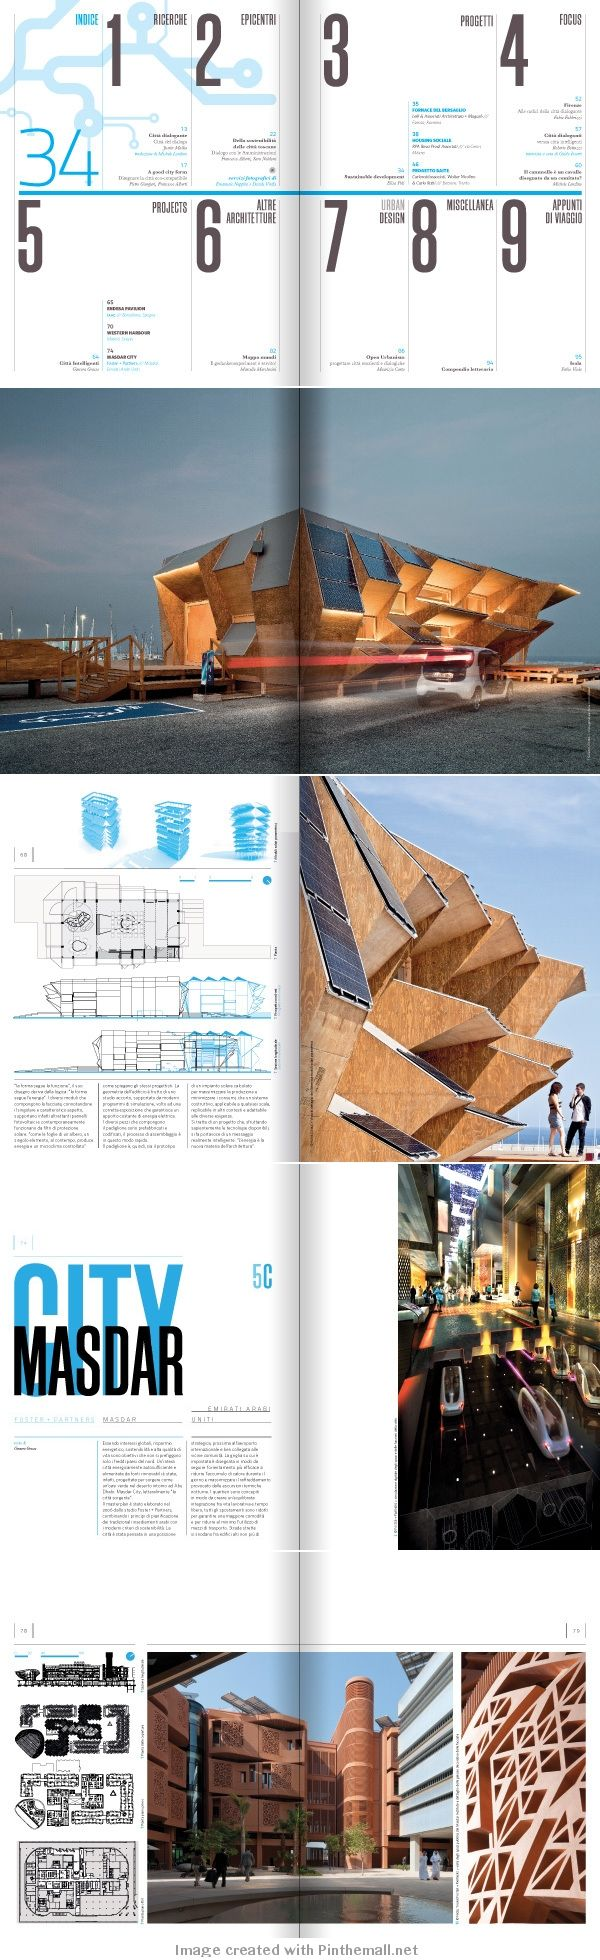 issue 34 D'Apostrophe Tuscan architecture magazine. #numbers #print #editorial